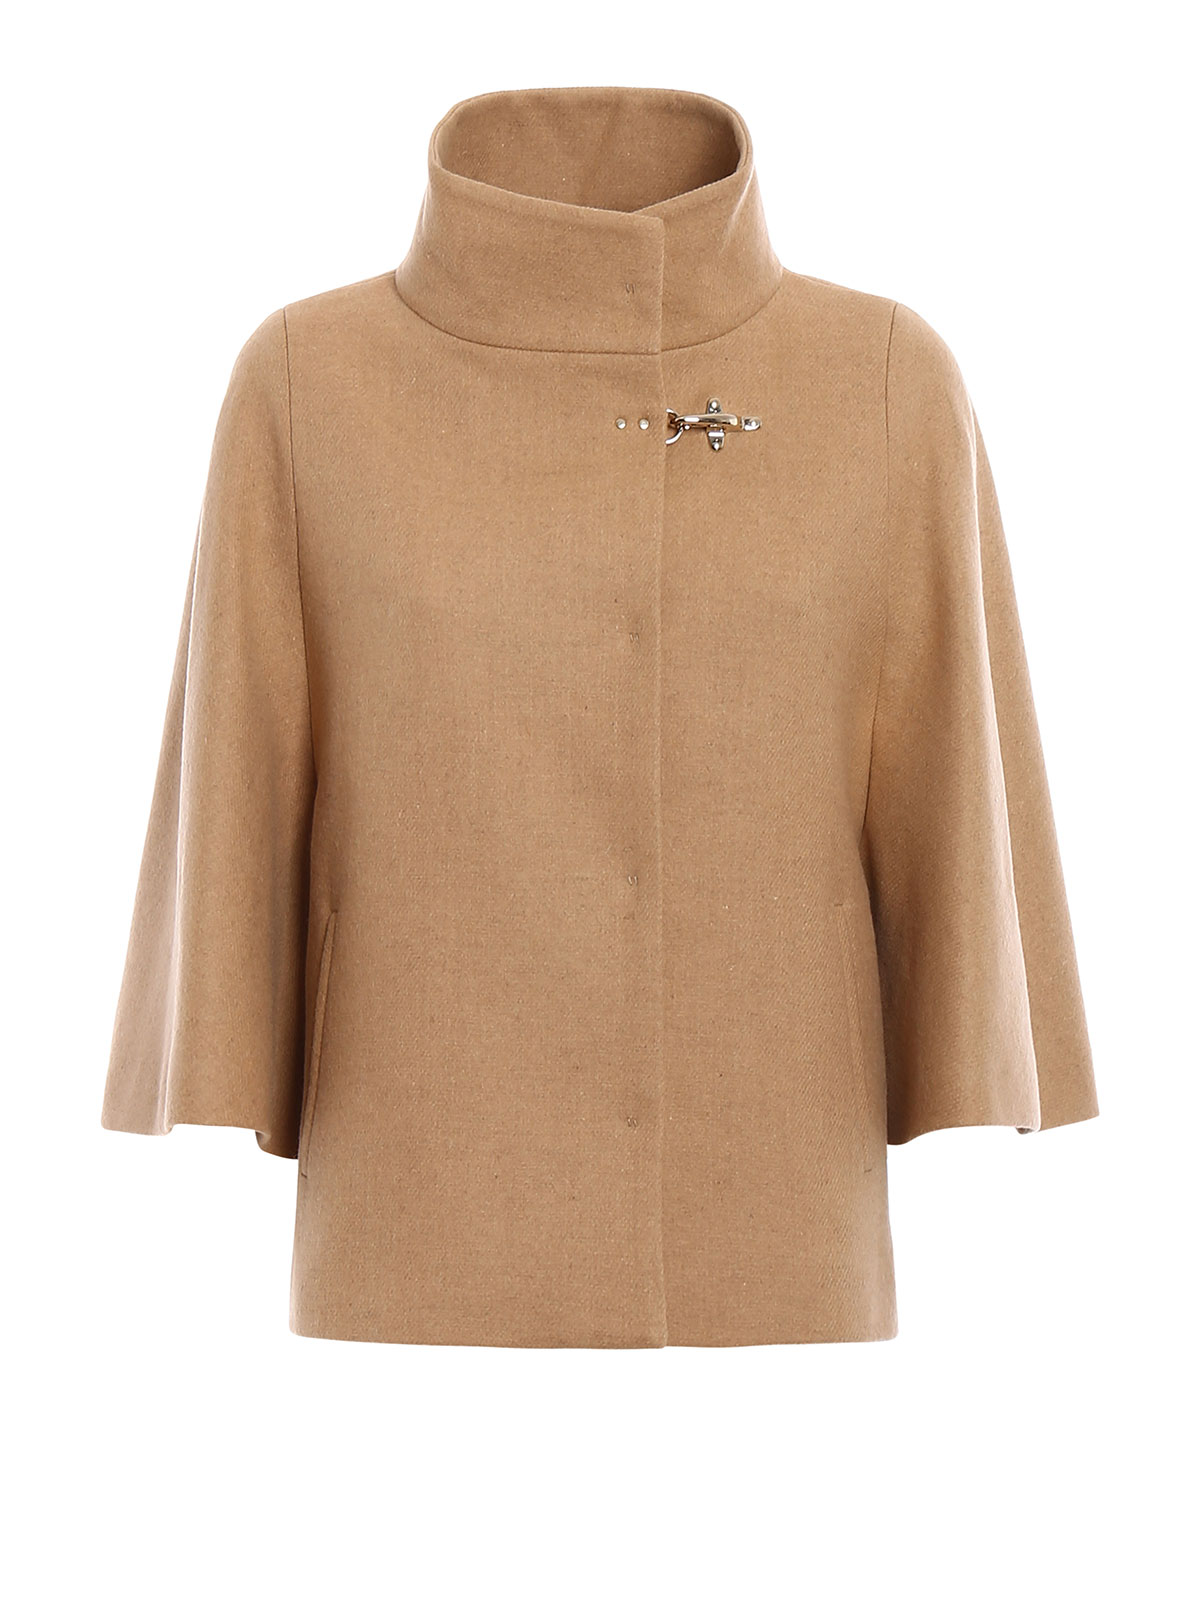 Shop eBay for great deals on Jones New York Solid Wool Blend Coats & Jackets for Women. You'll find new or used products in Jones New York Solid Wool Blend Coats & Jackets for Women on eBay. Free shipping on selected items.